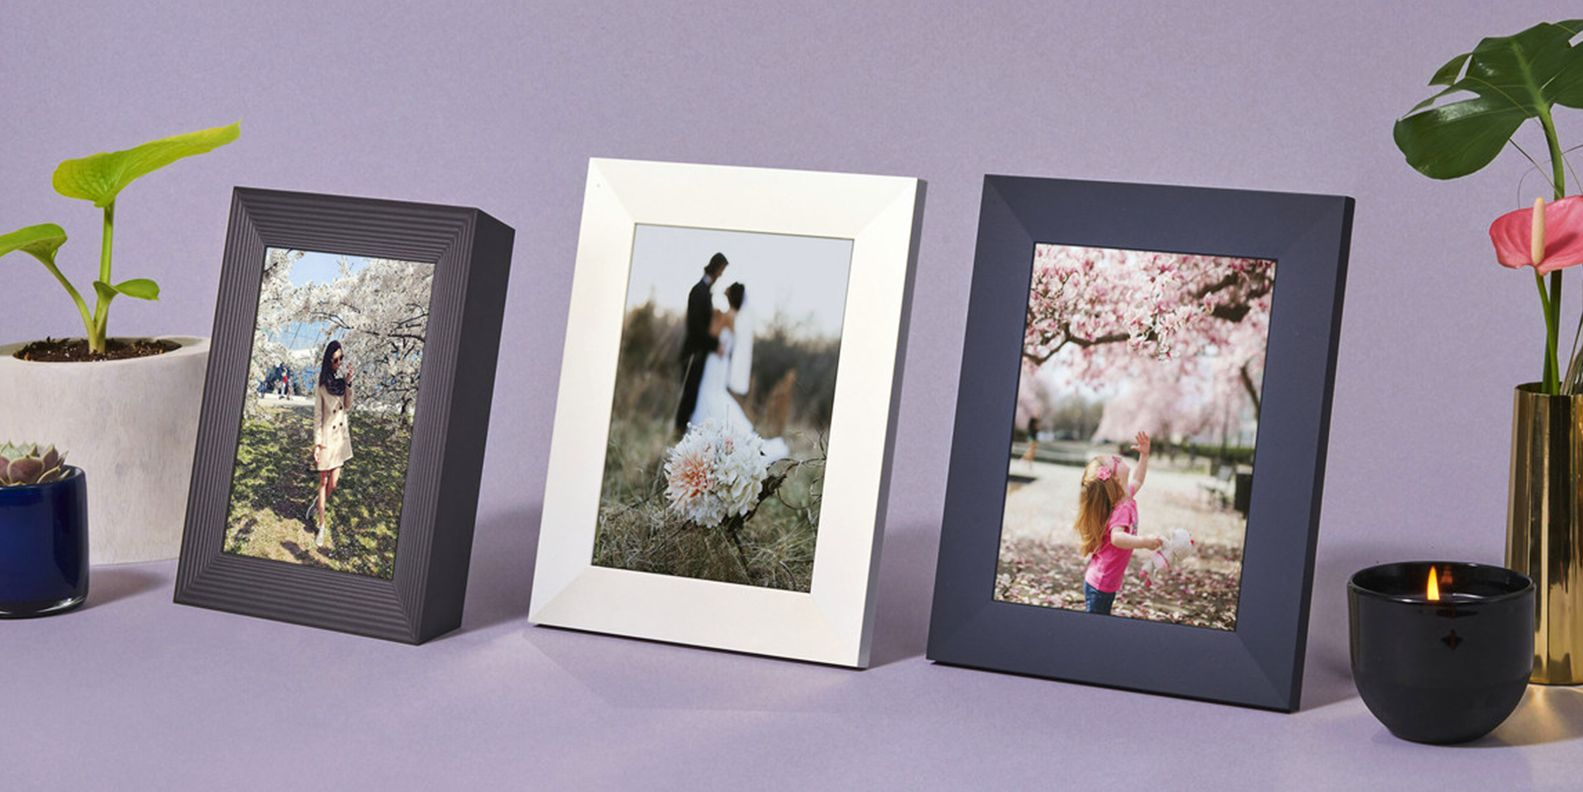 Top Best Digital Photo Frame Review Guide For 2021-2022